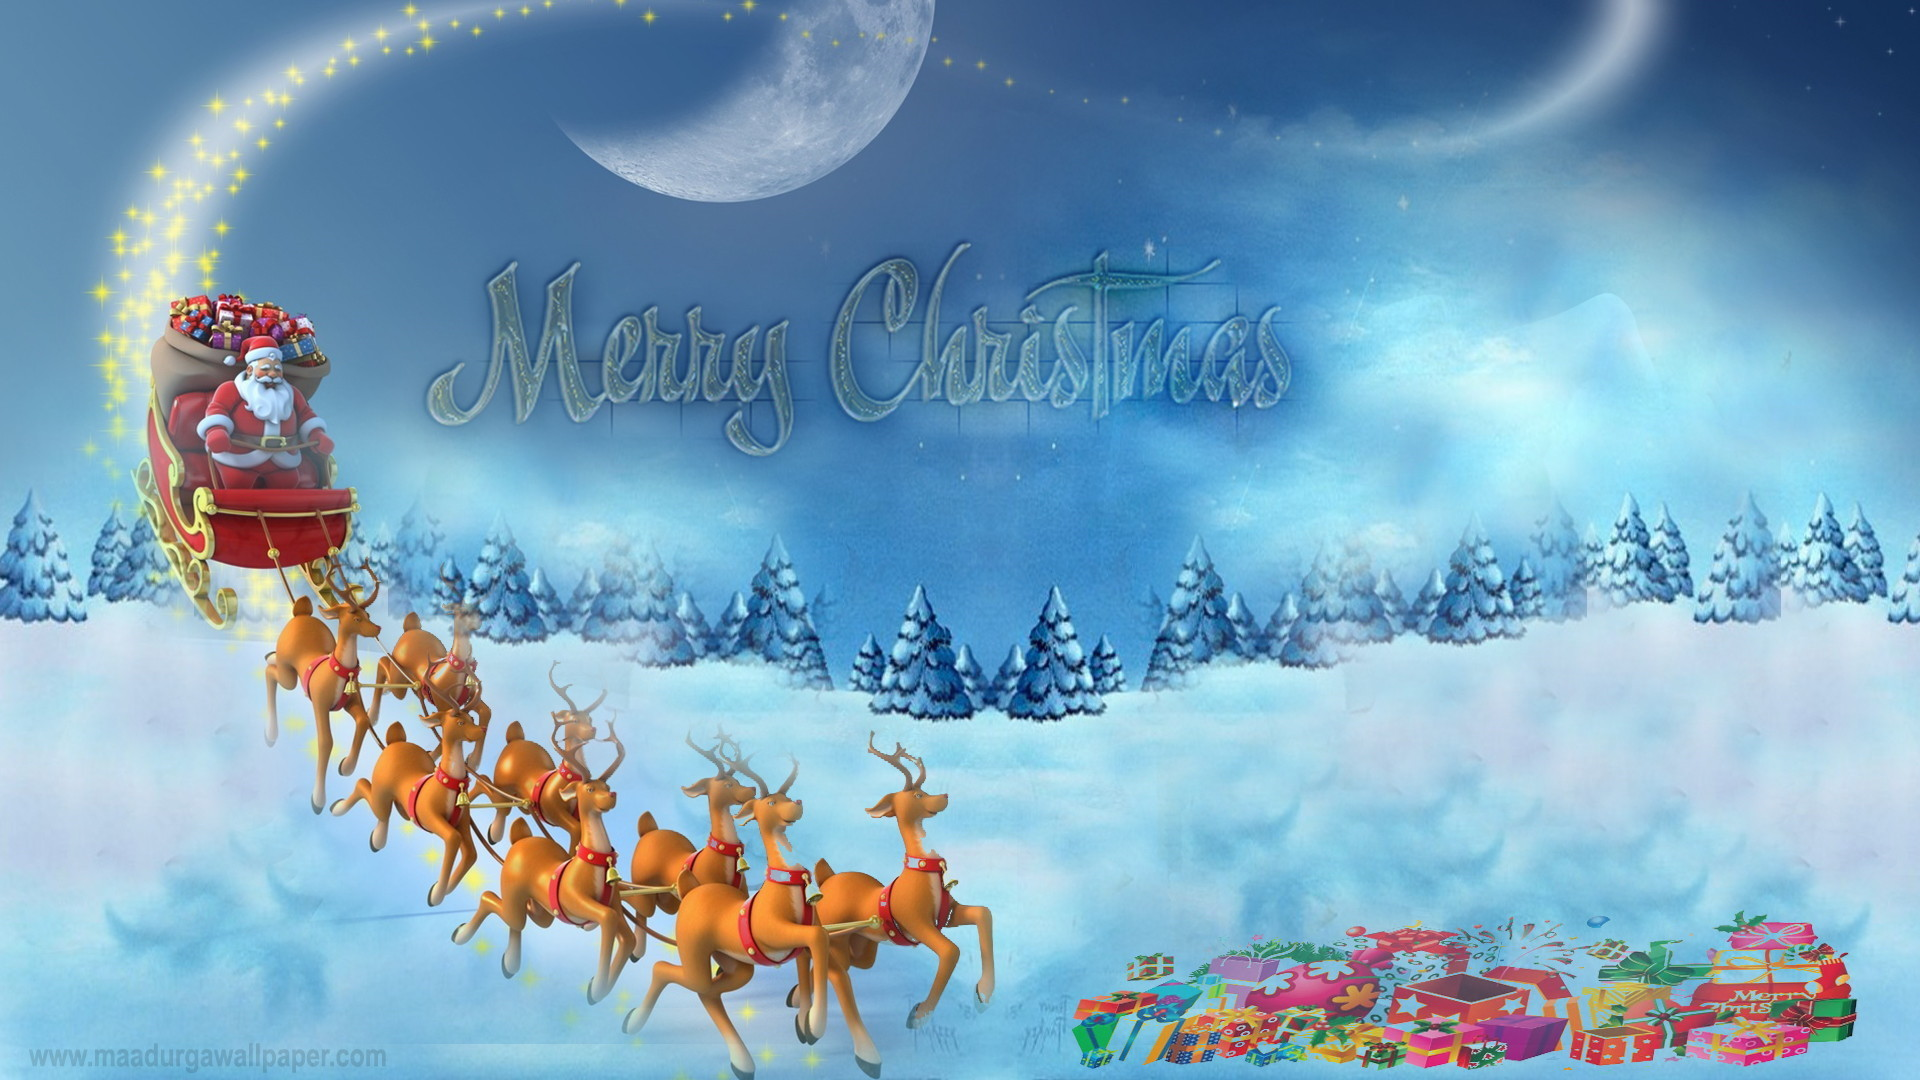 Christmas wallpapers free, beautiful pictures & hd images download free for  tablet, laptop &